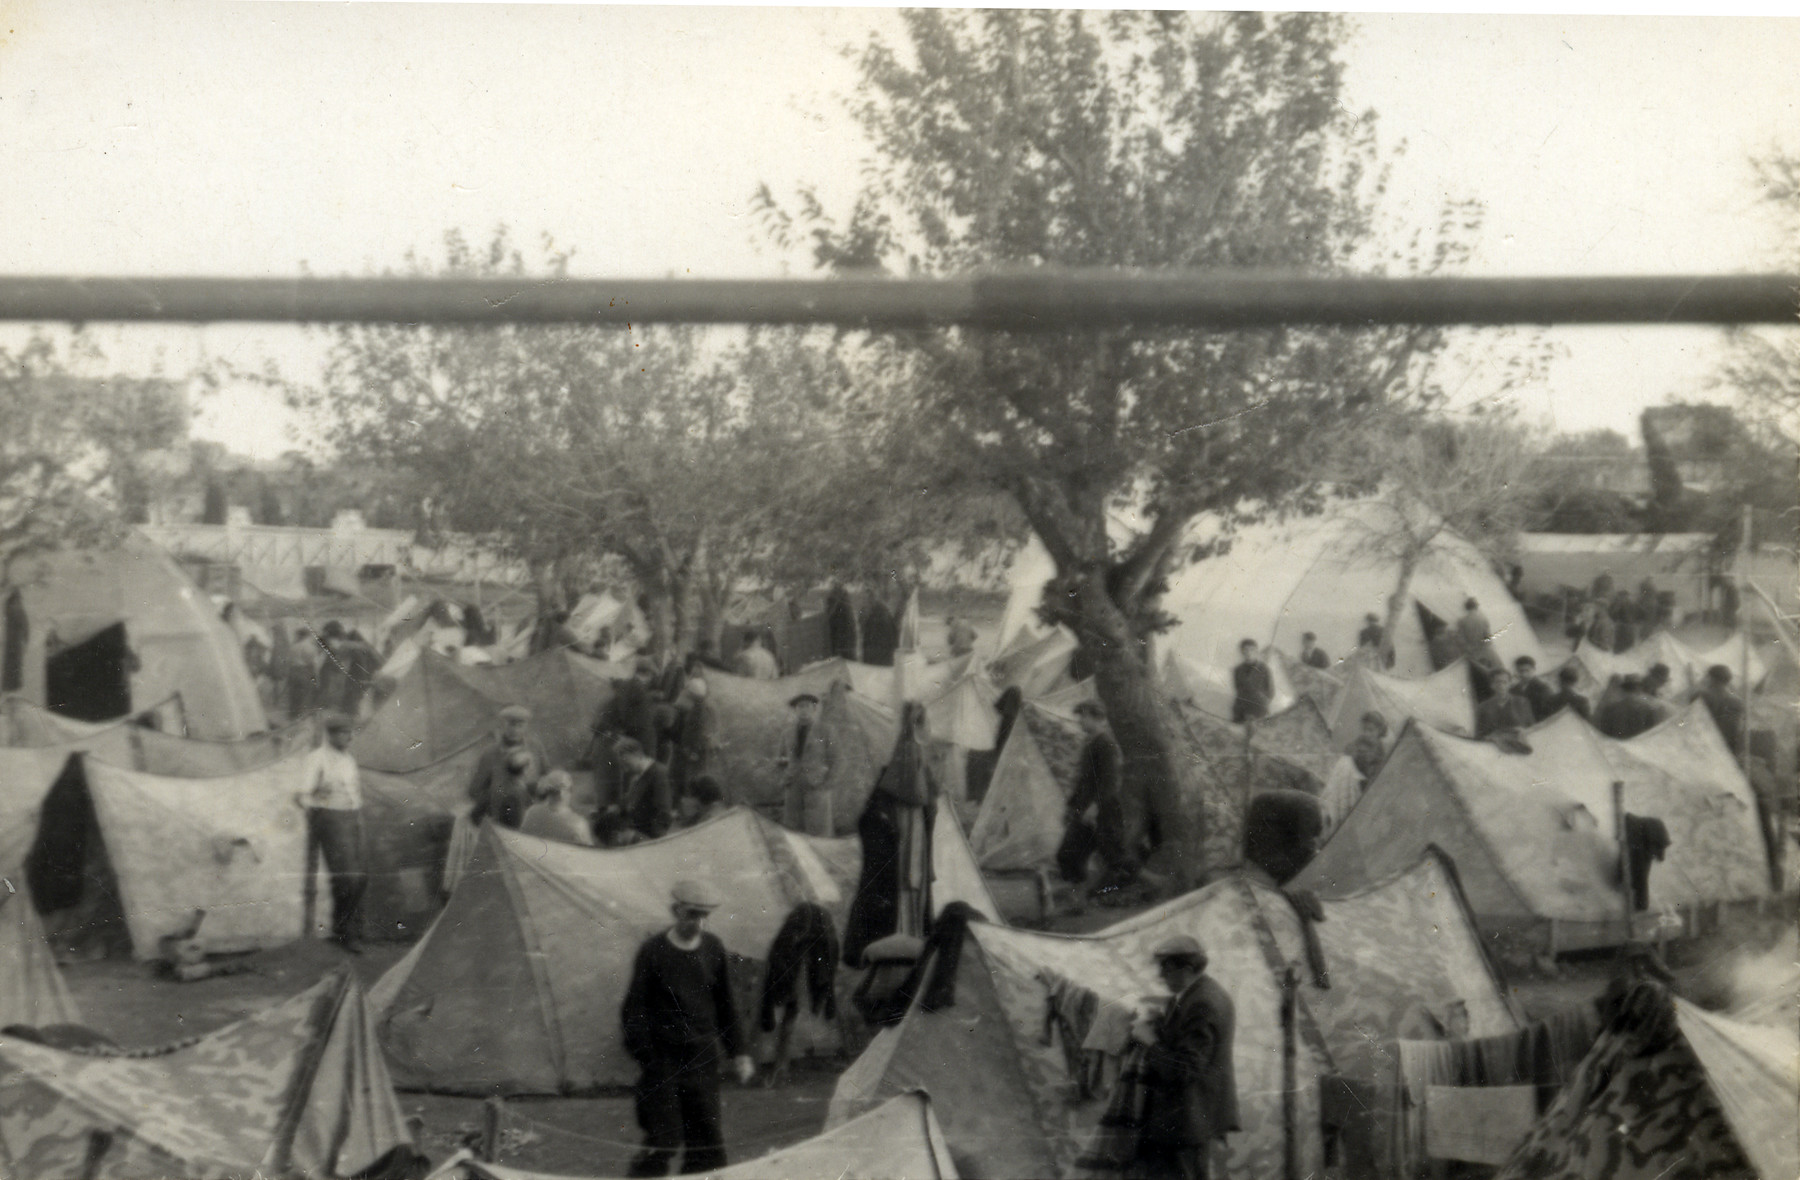 Tent city for passengers on the Pentcho following their shipwreck.